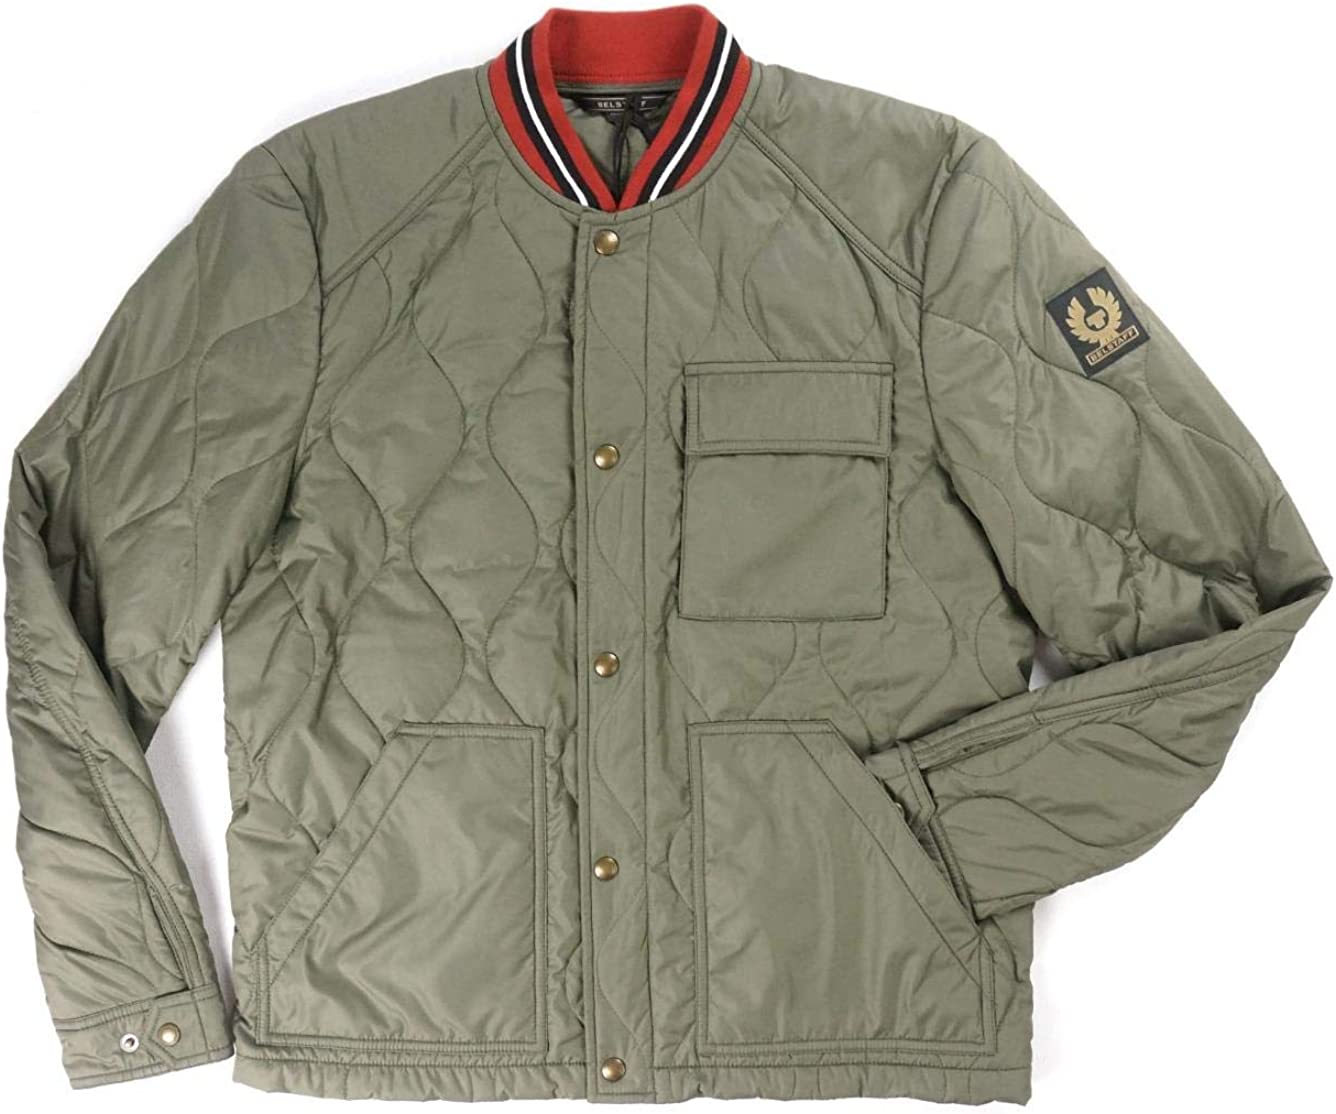 Belstaff New $595 Slate Green Si Haverford Albuquerque Mall Jacket Bomber Quilted Large special price